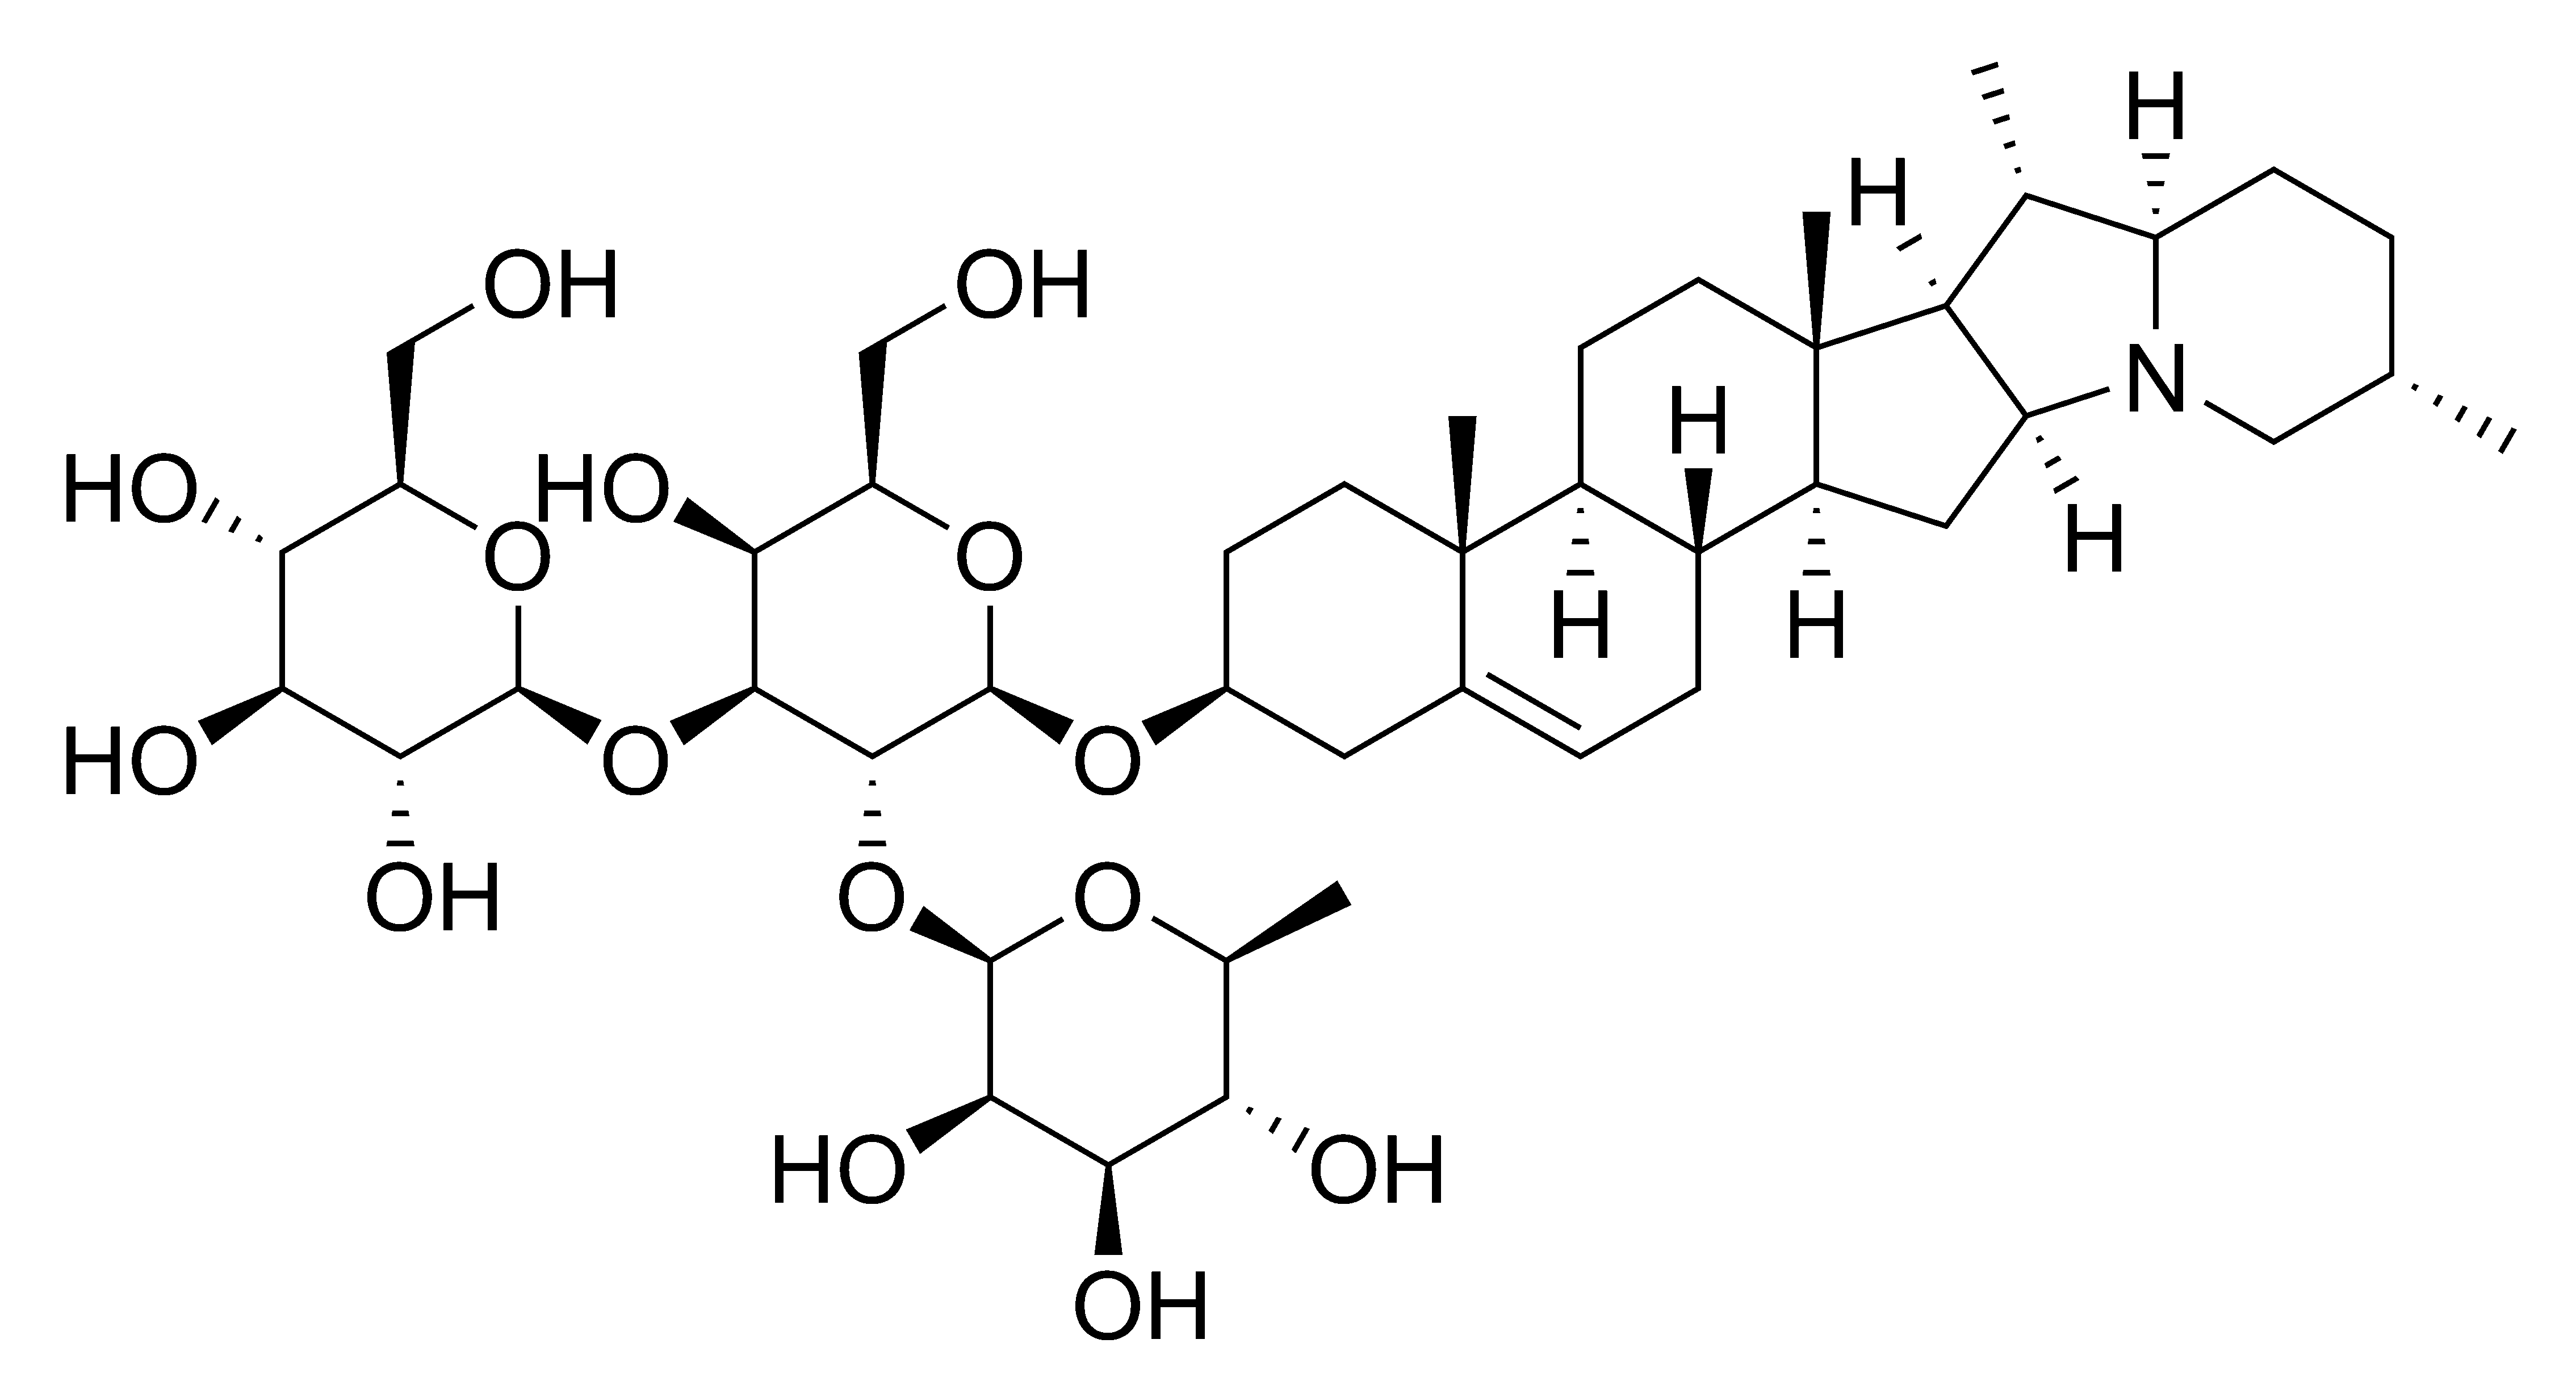 File Solanine Chemical Structure